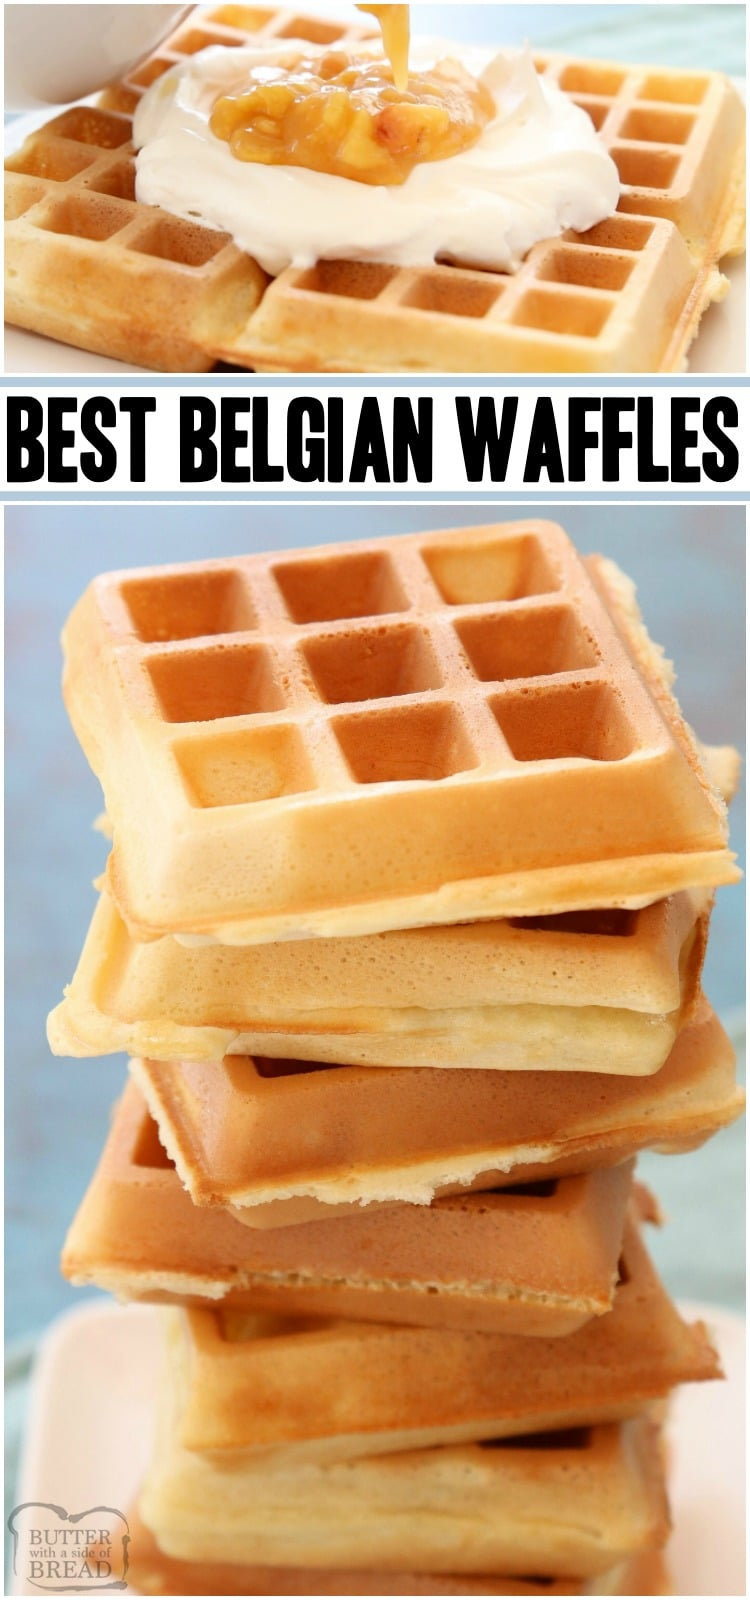 Simply the BEST Belgian Waffle recipe EVER. 4 Tips for PERFECT WAFFLES every time! Crispy Belgian waffles with great flavor & deep grooves, ready for butter & syrup! #waffles #recipe #breakfast #BelgianWaffles #waffle from BUTTER WITH A SIDE OF BREAD